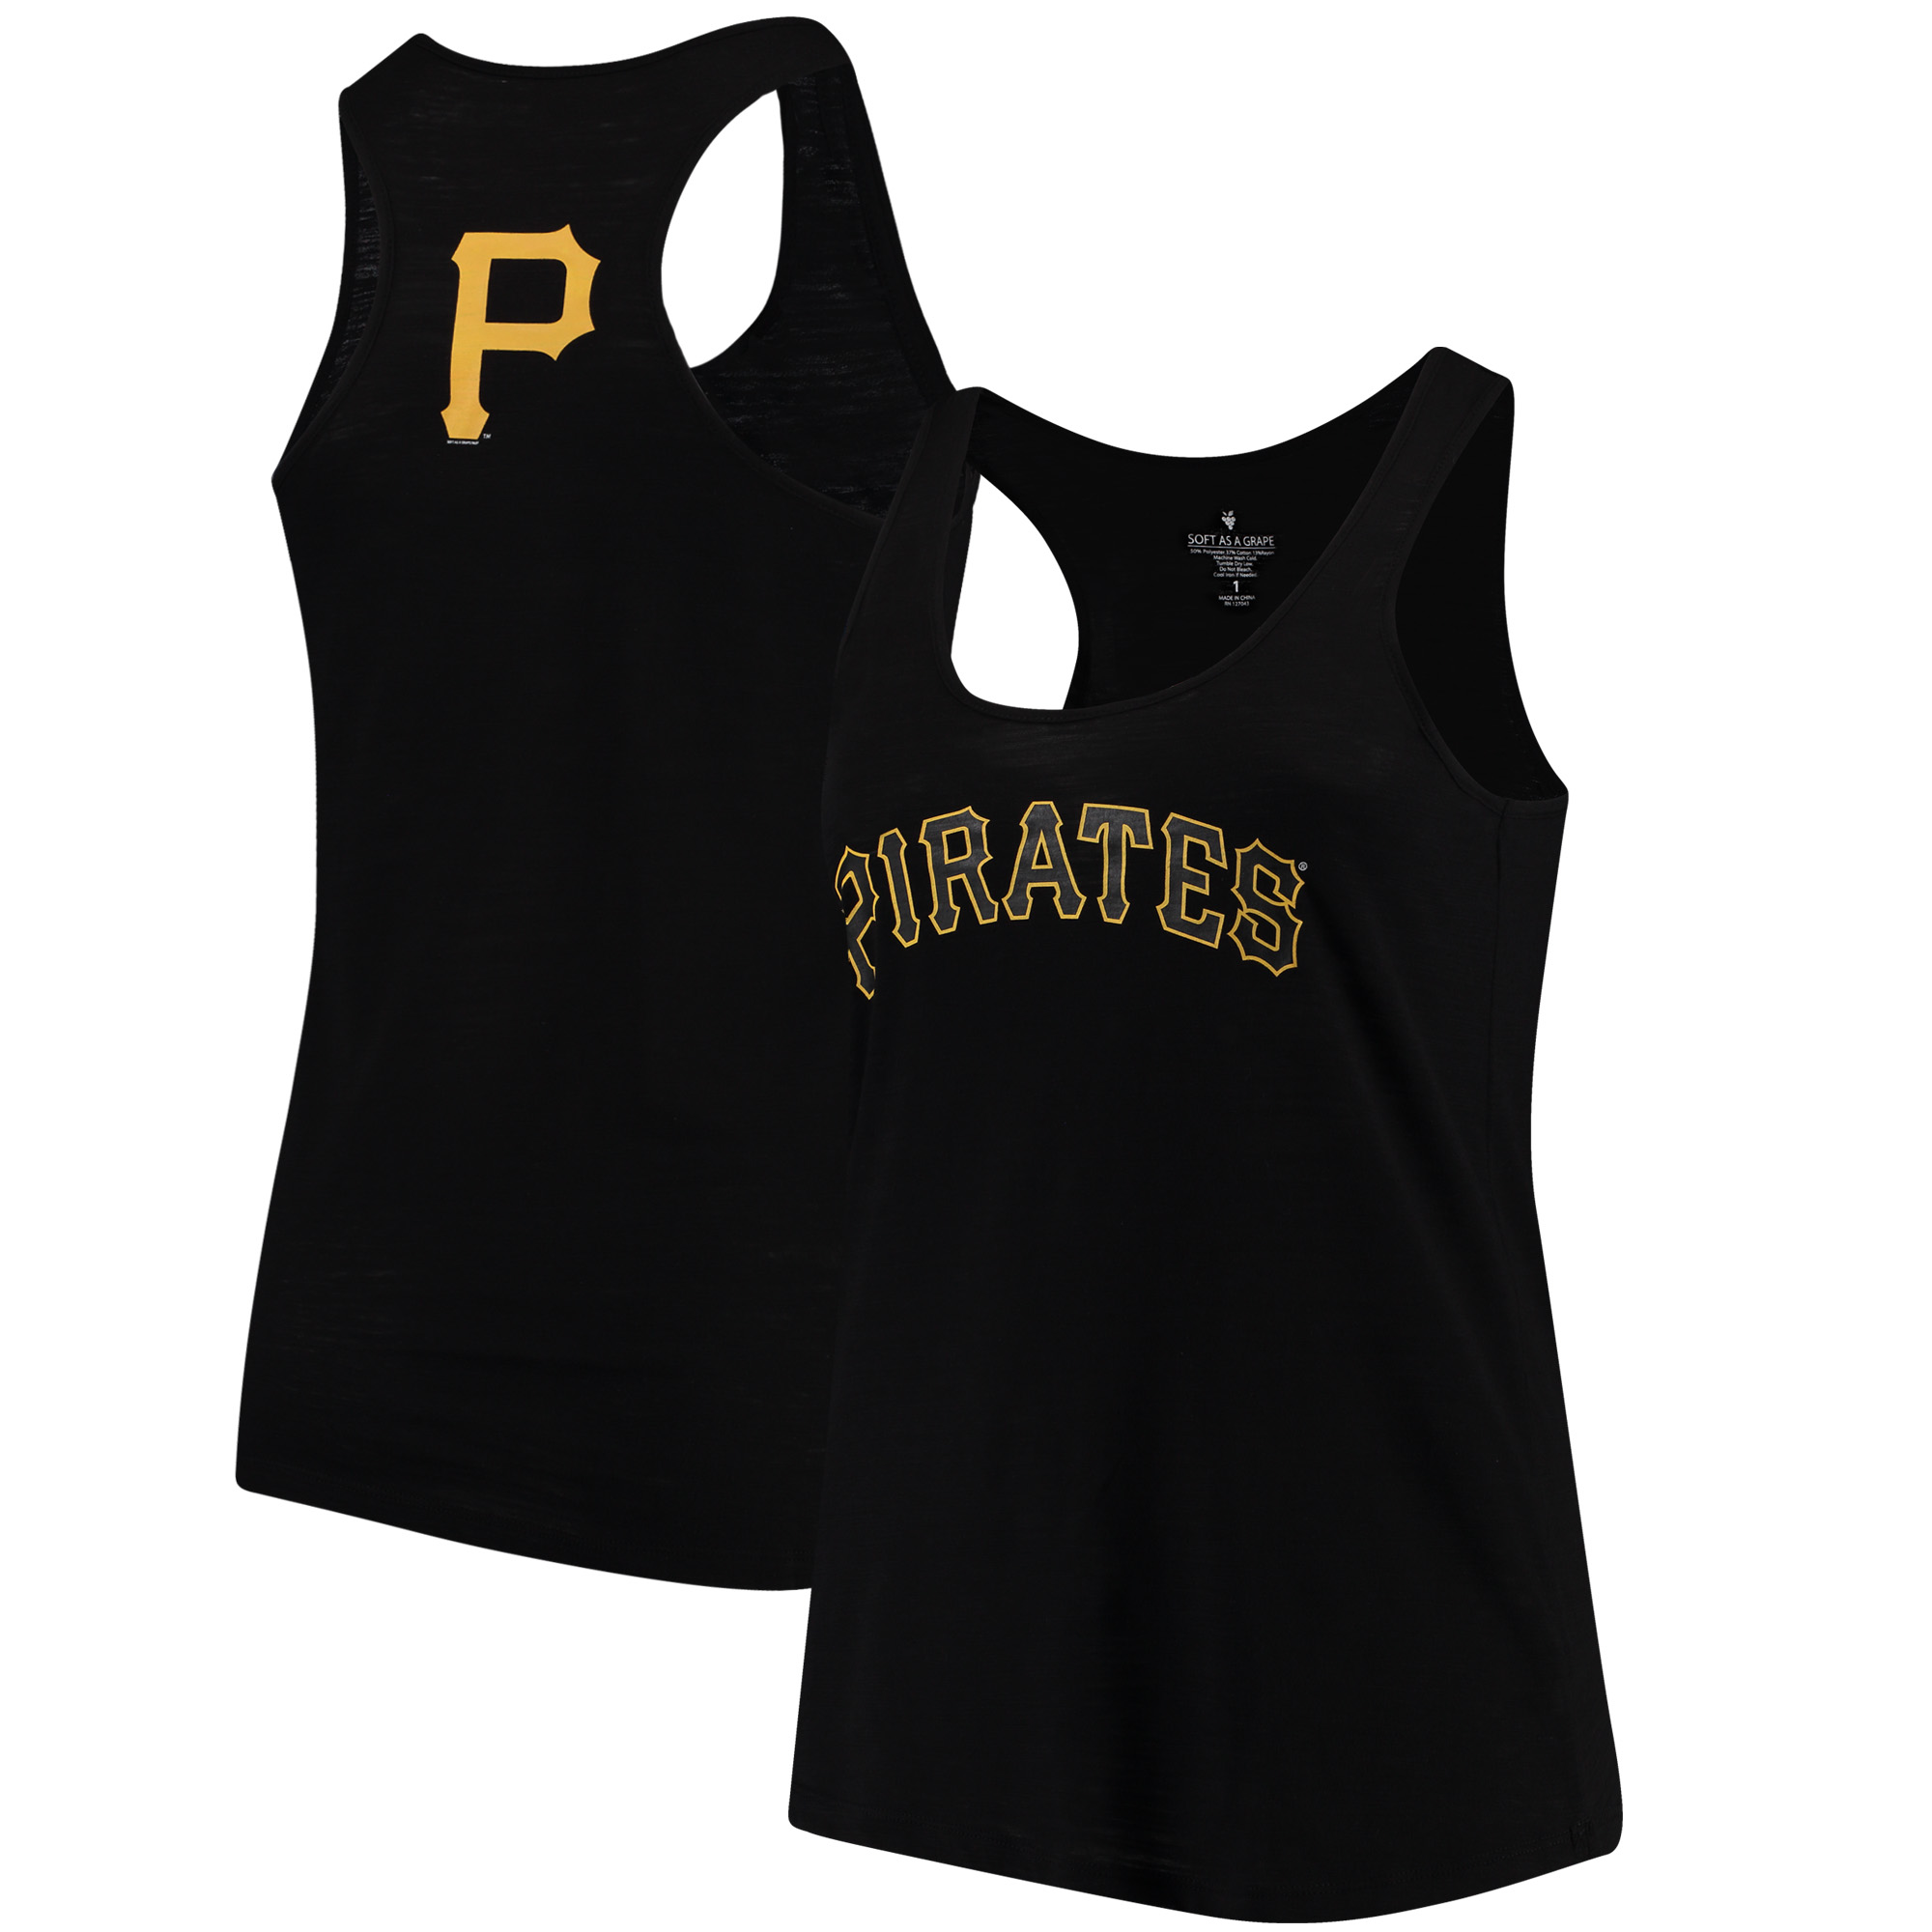 Pittsburgh Pirates Soft as a Grape Women's Plus Size Swing for the Fences Racerback Tank Top - Black